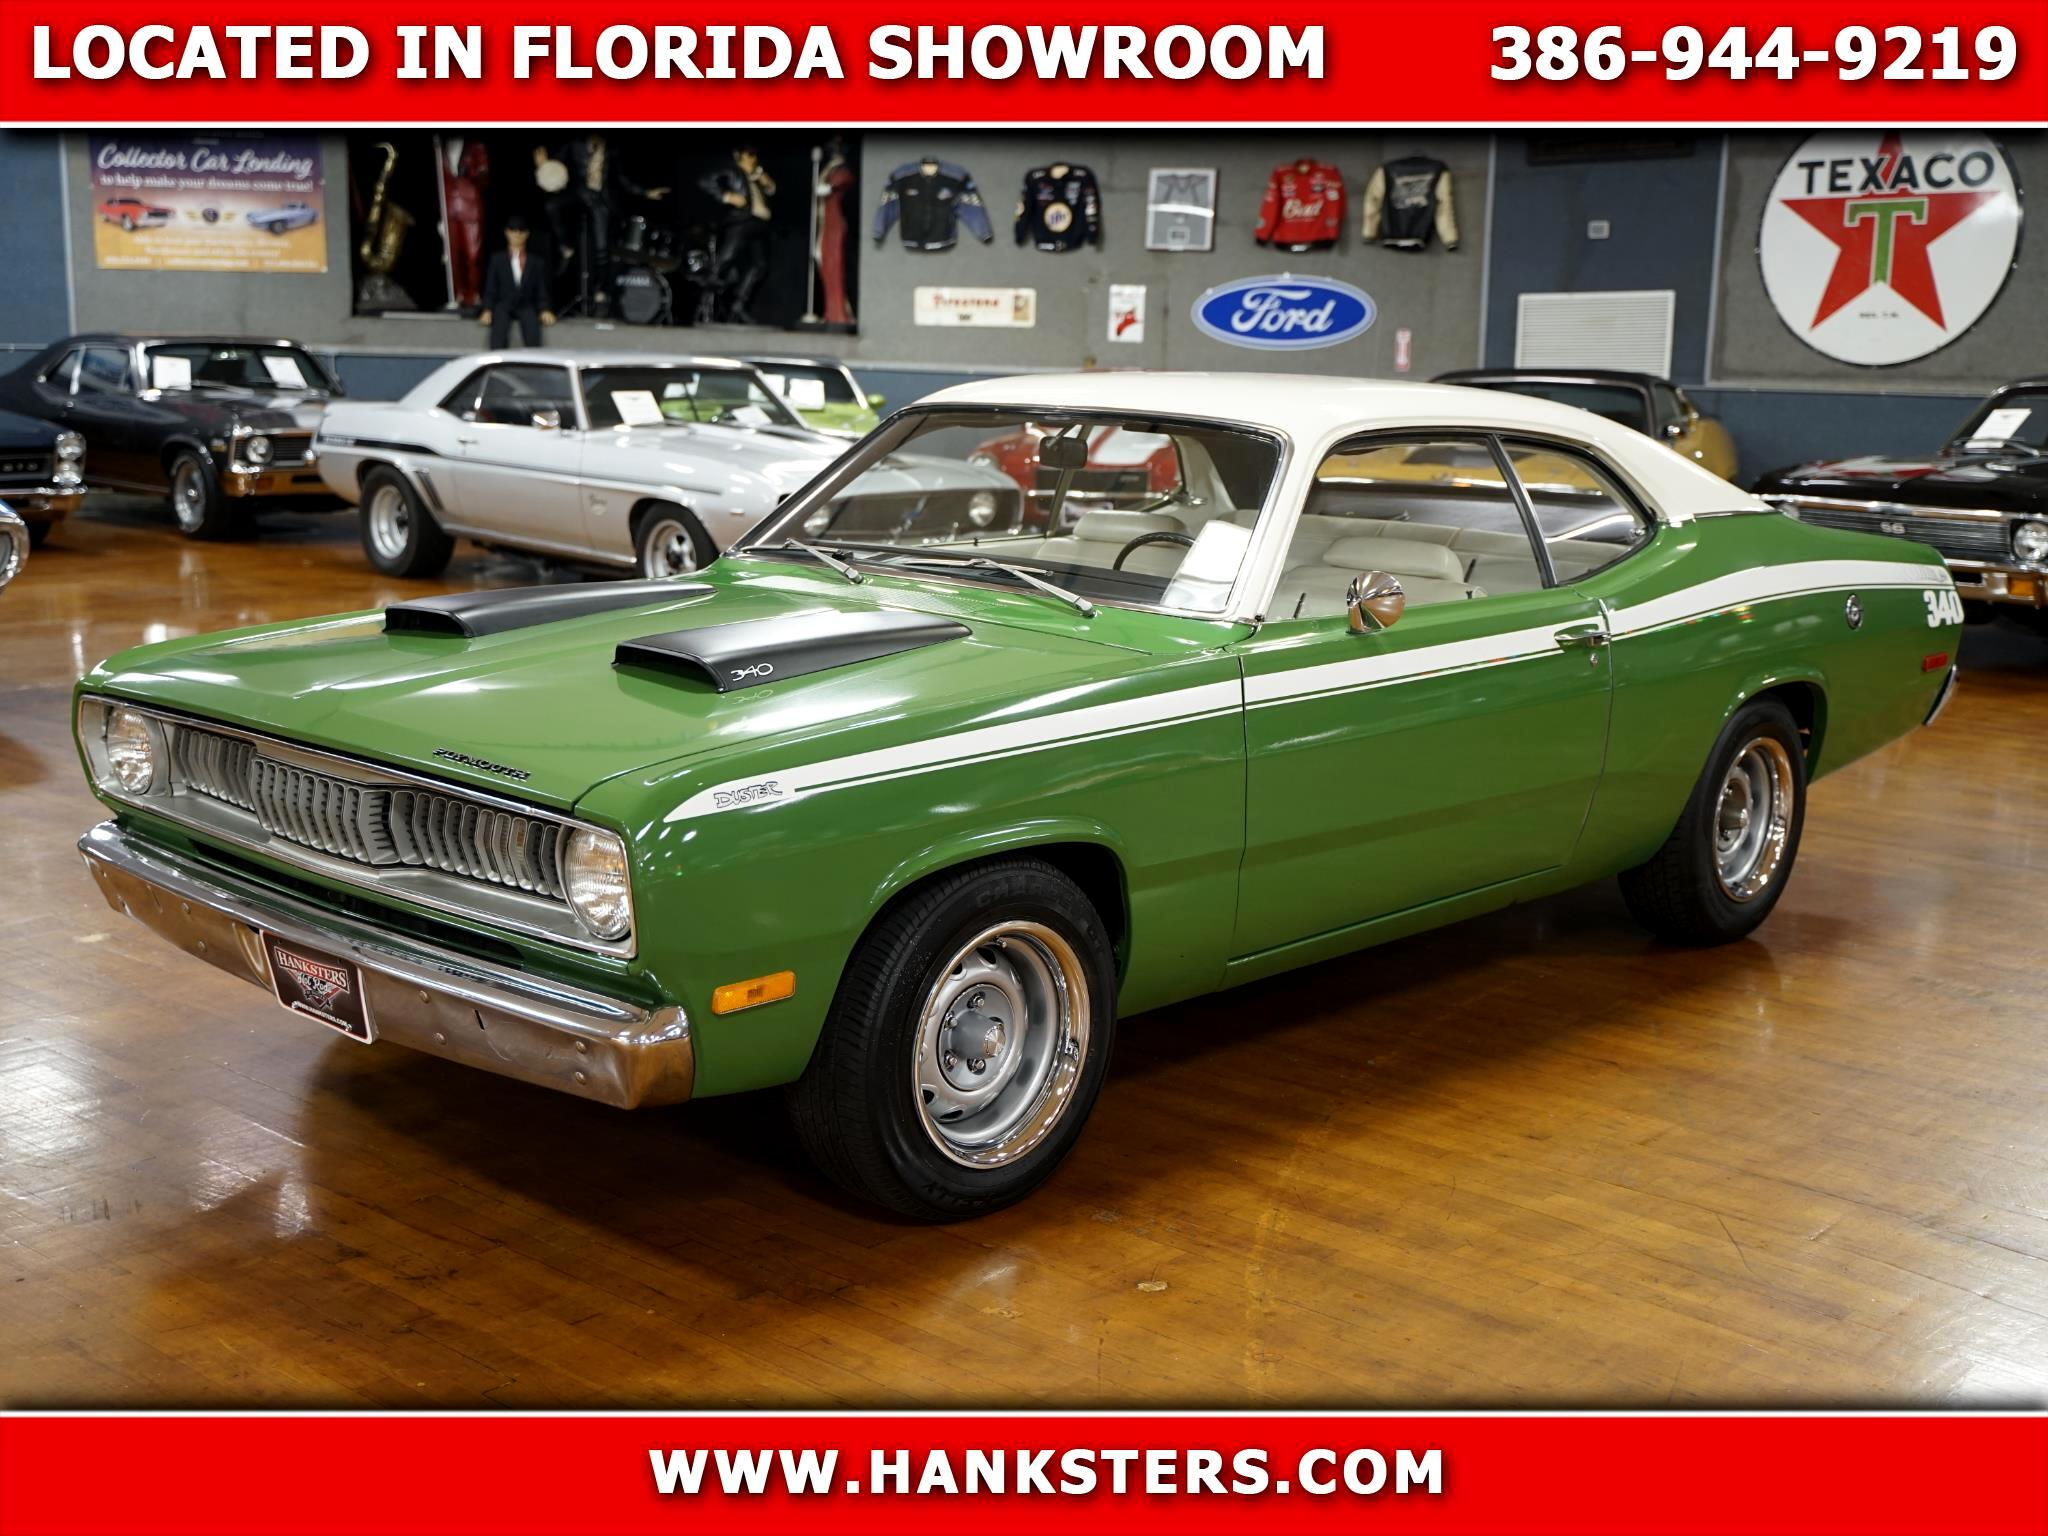 1972 Plymouth Duster Shamrock Special